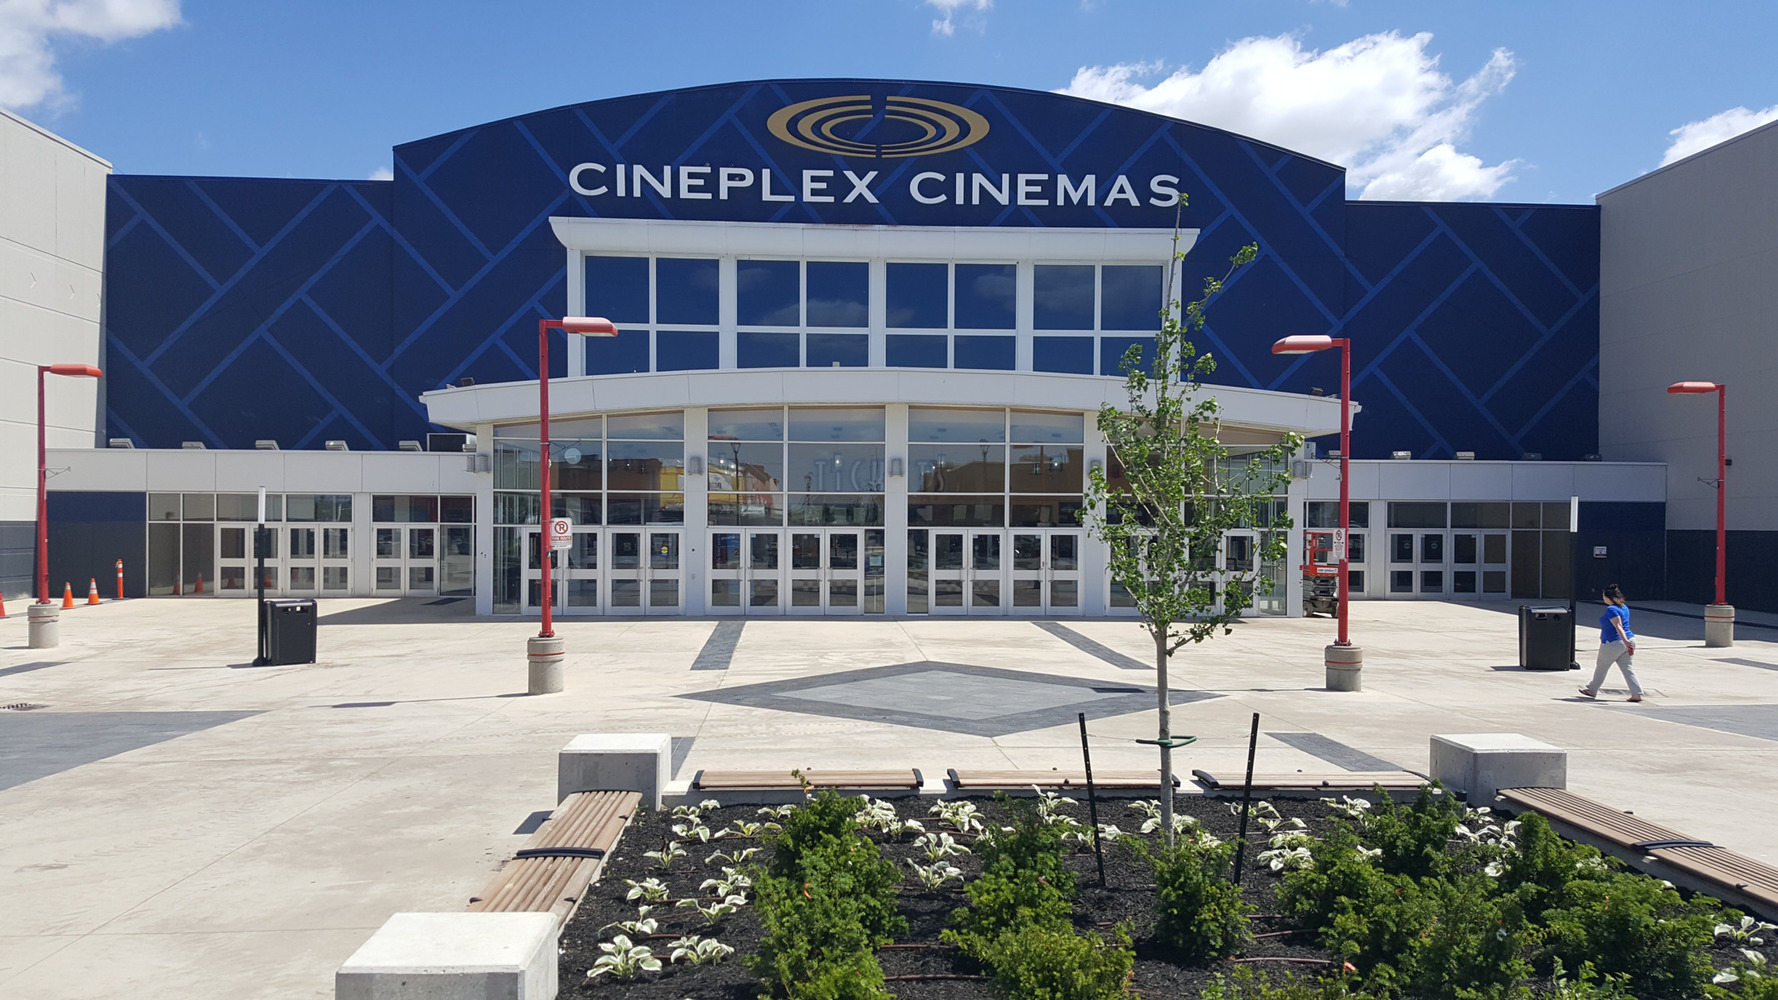 Cineplex's Natural Stone Project - New Ebony (Granite) Pavers by STONEarch